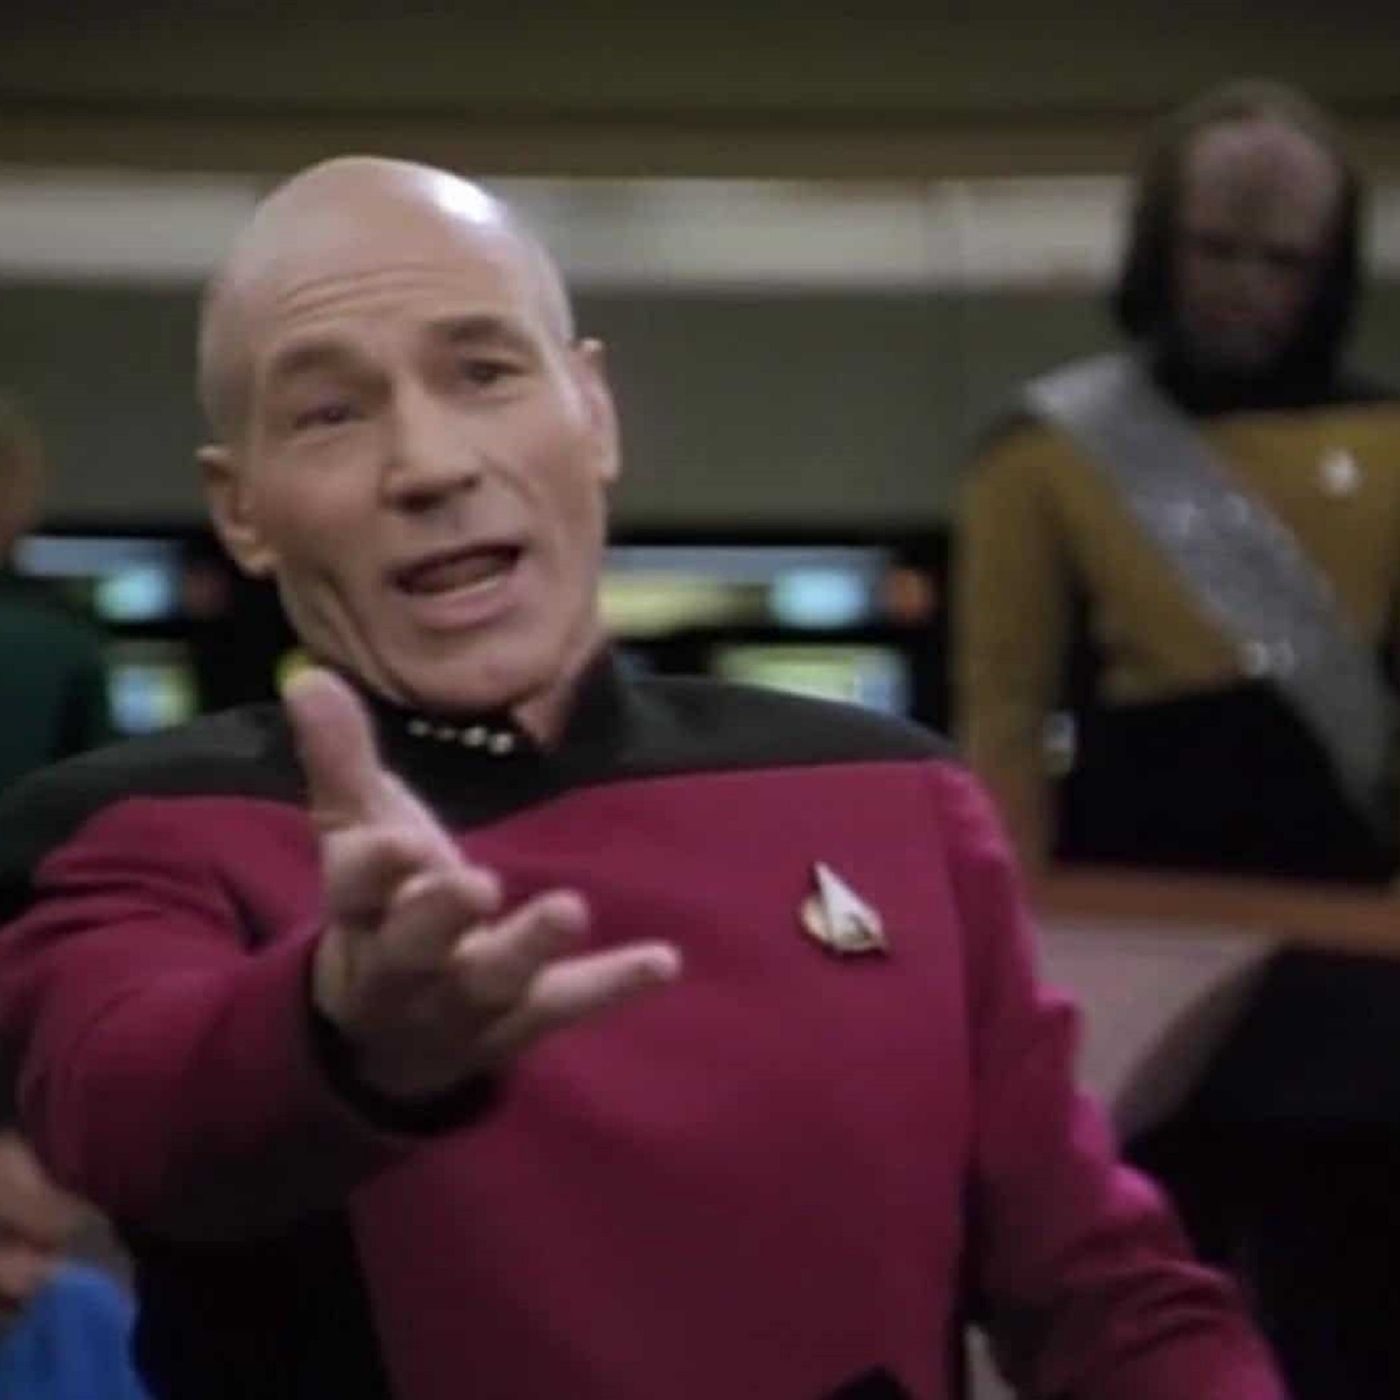 ...About Comedy in Star Trek